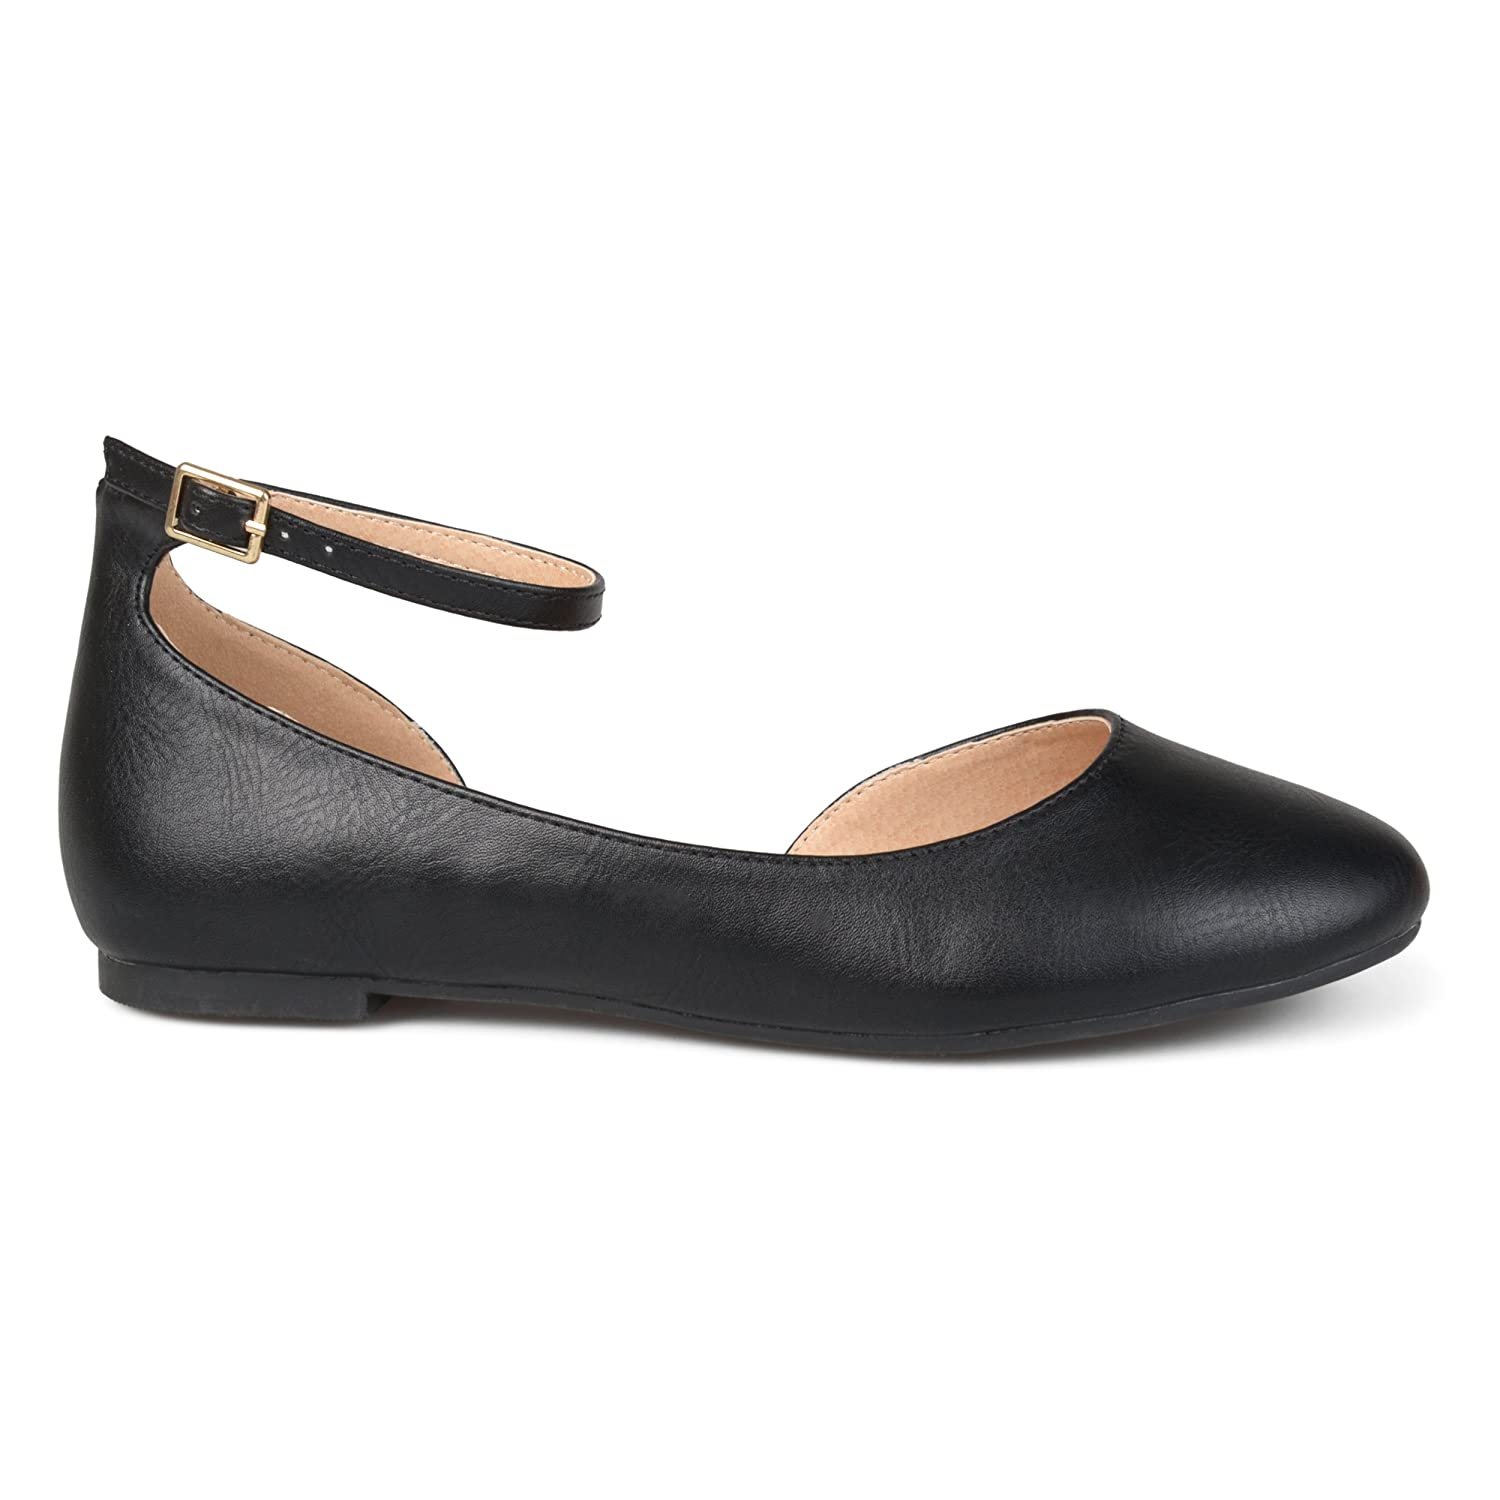 Brinley Co Womens ARO Faux Leather Wide Width Ankle Strap Round Toe D'Orsay Flats B074WCFZWJ 7.5 B(M) US|Black